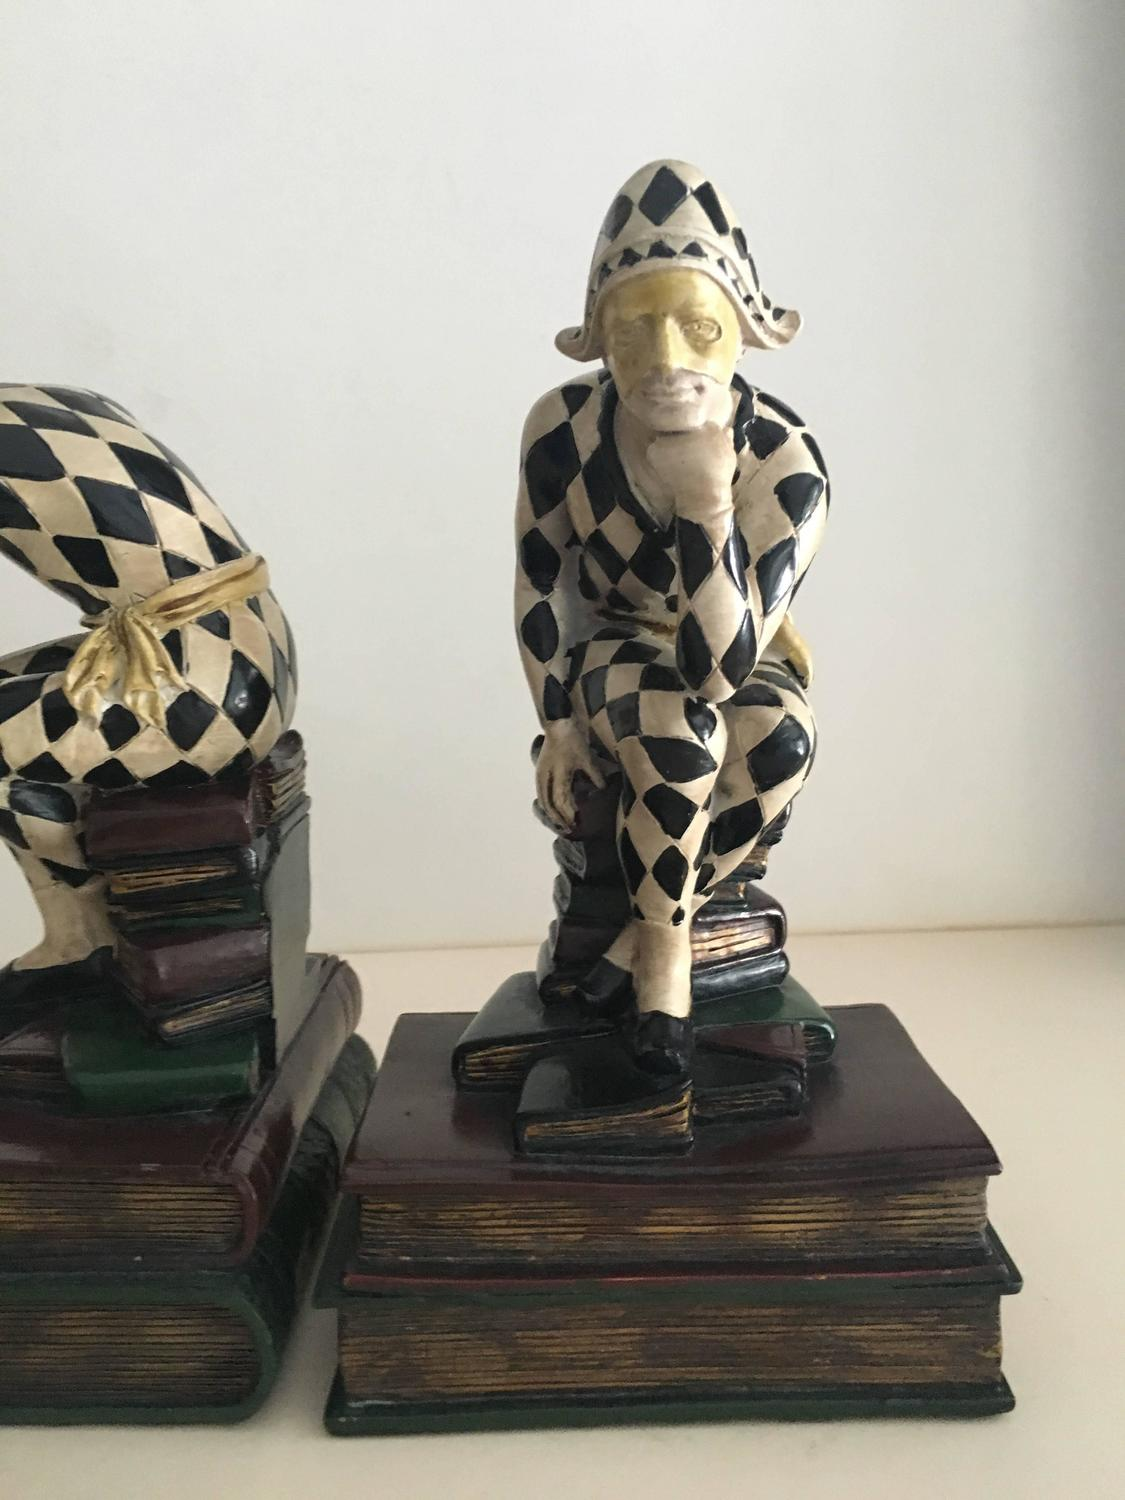 Unique Pair Of Harlequin Bookends For Sale At 1stdibs